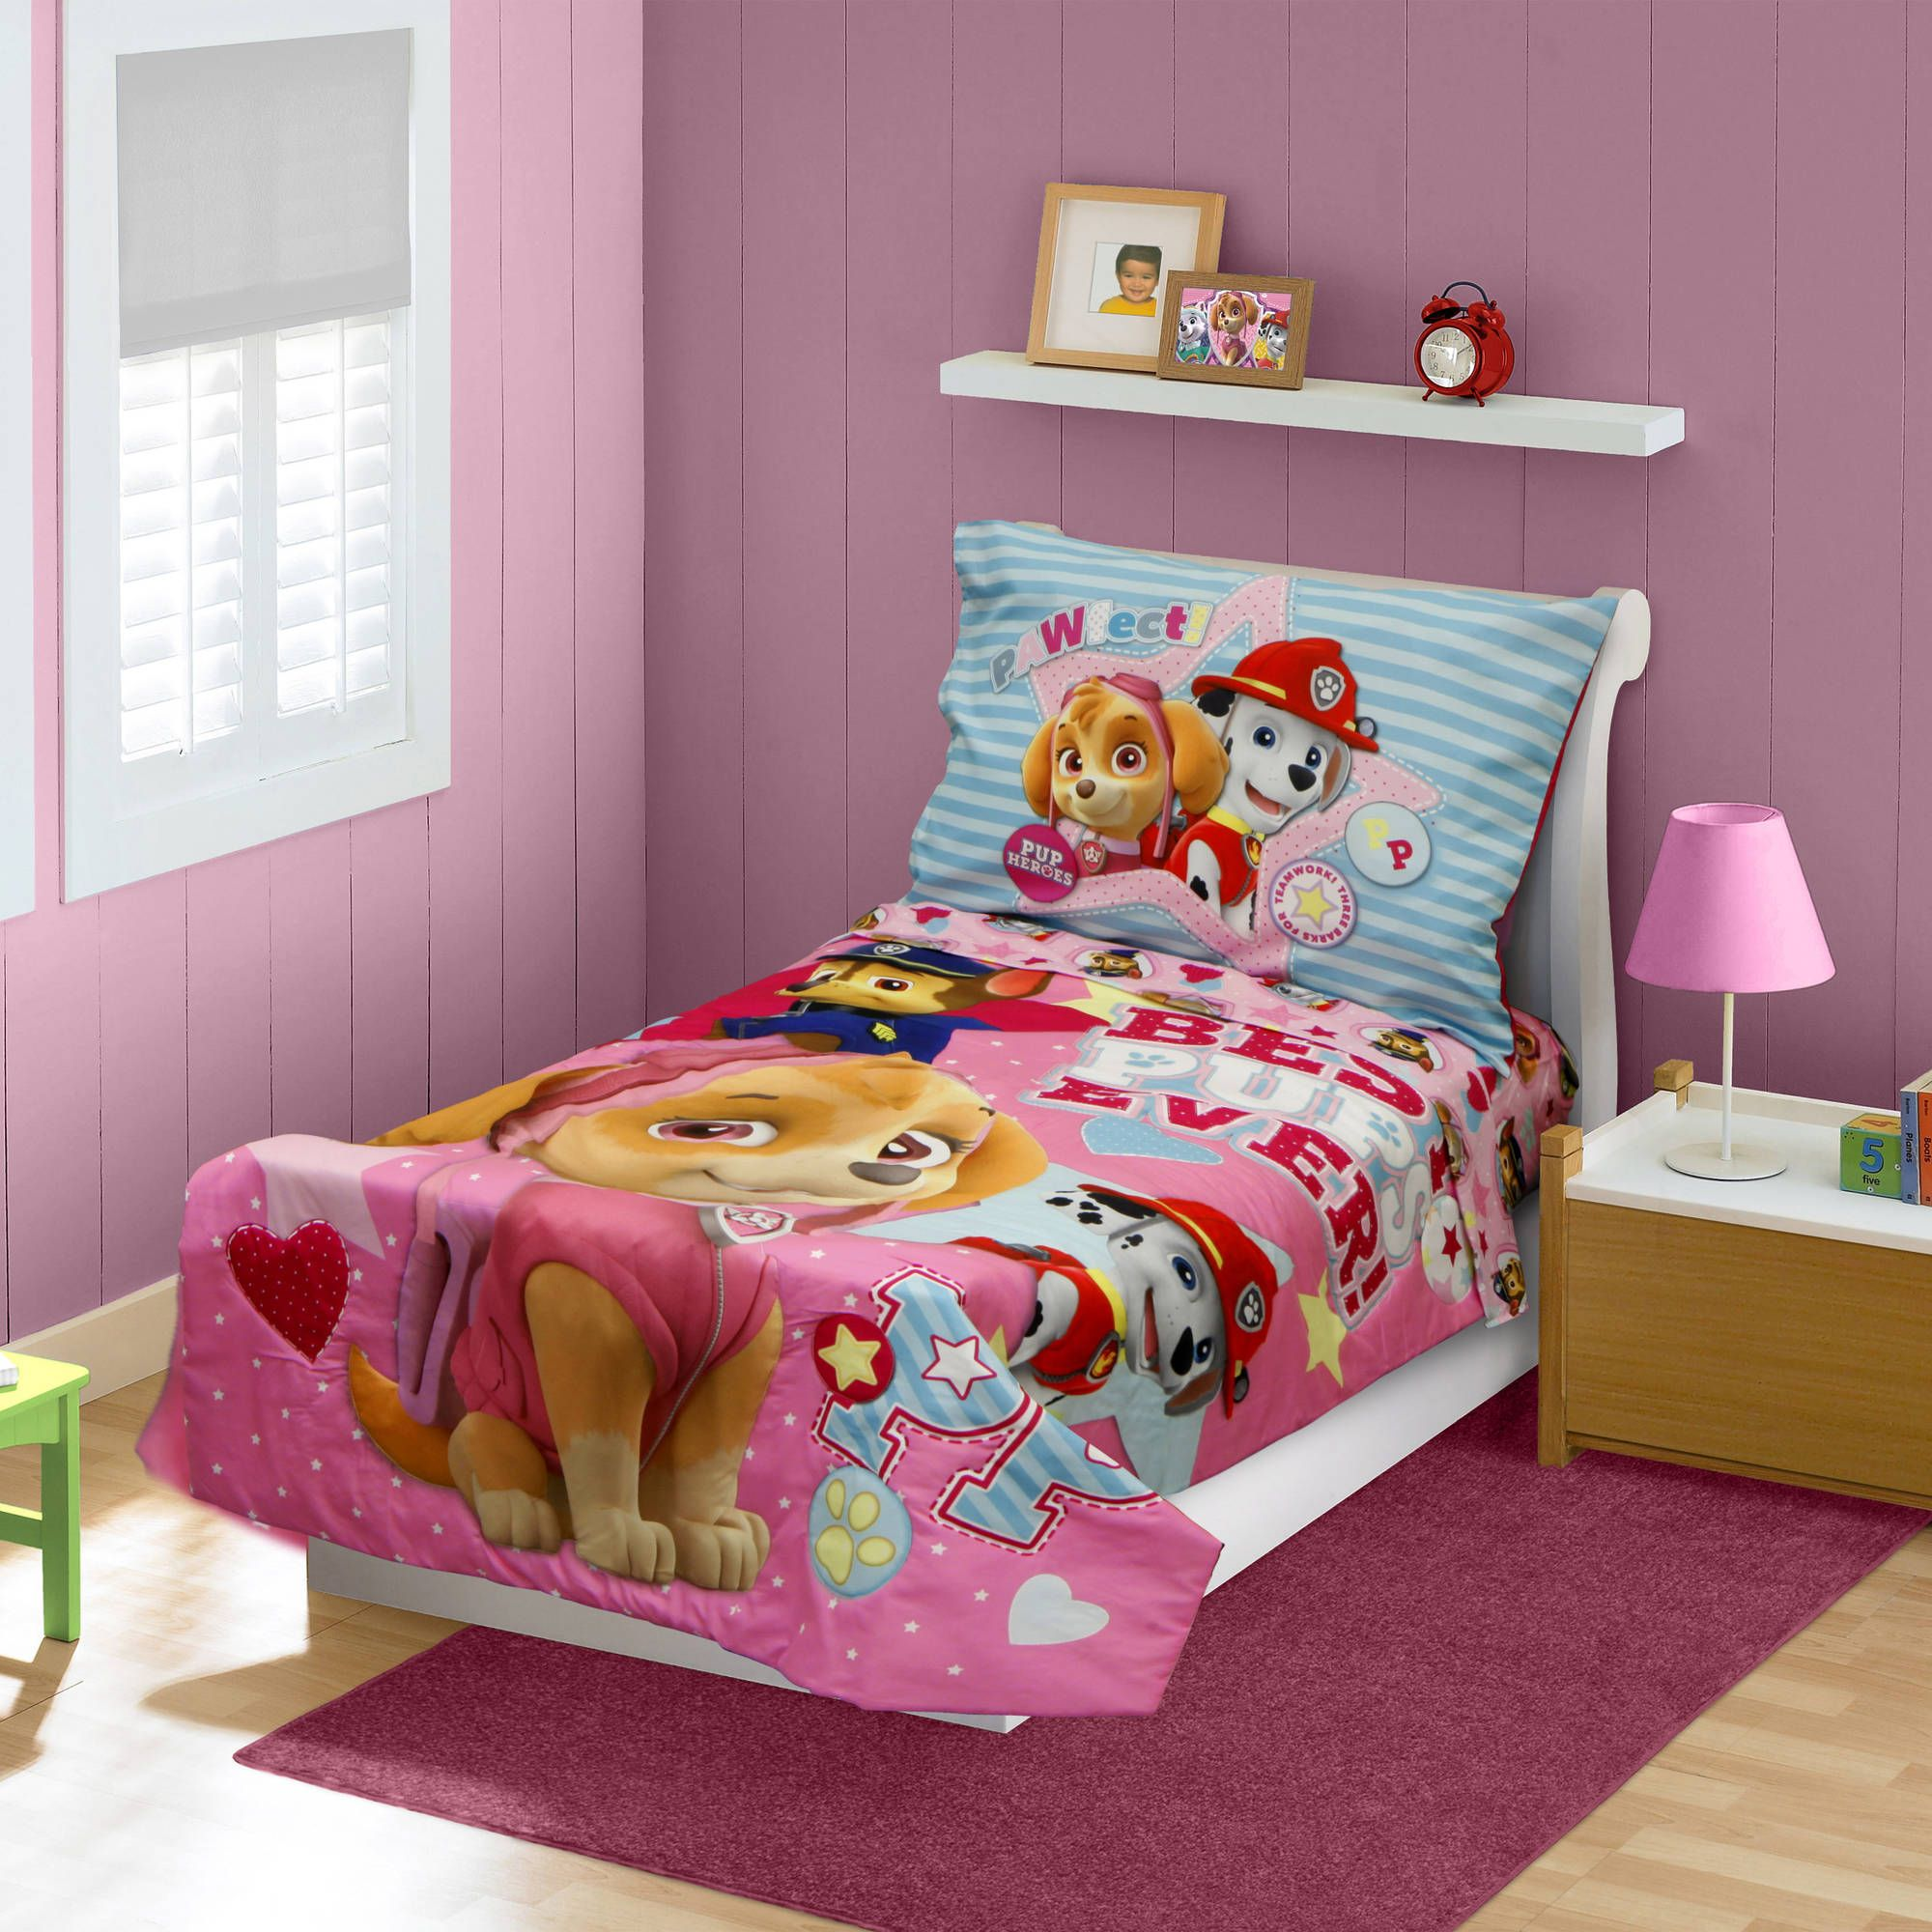 Paw Patrol Skye Best Pups Ever 3Piece Toddler Bedding Set with